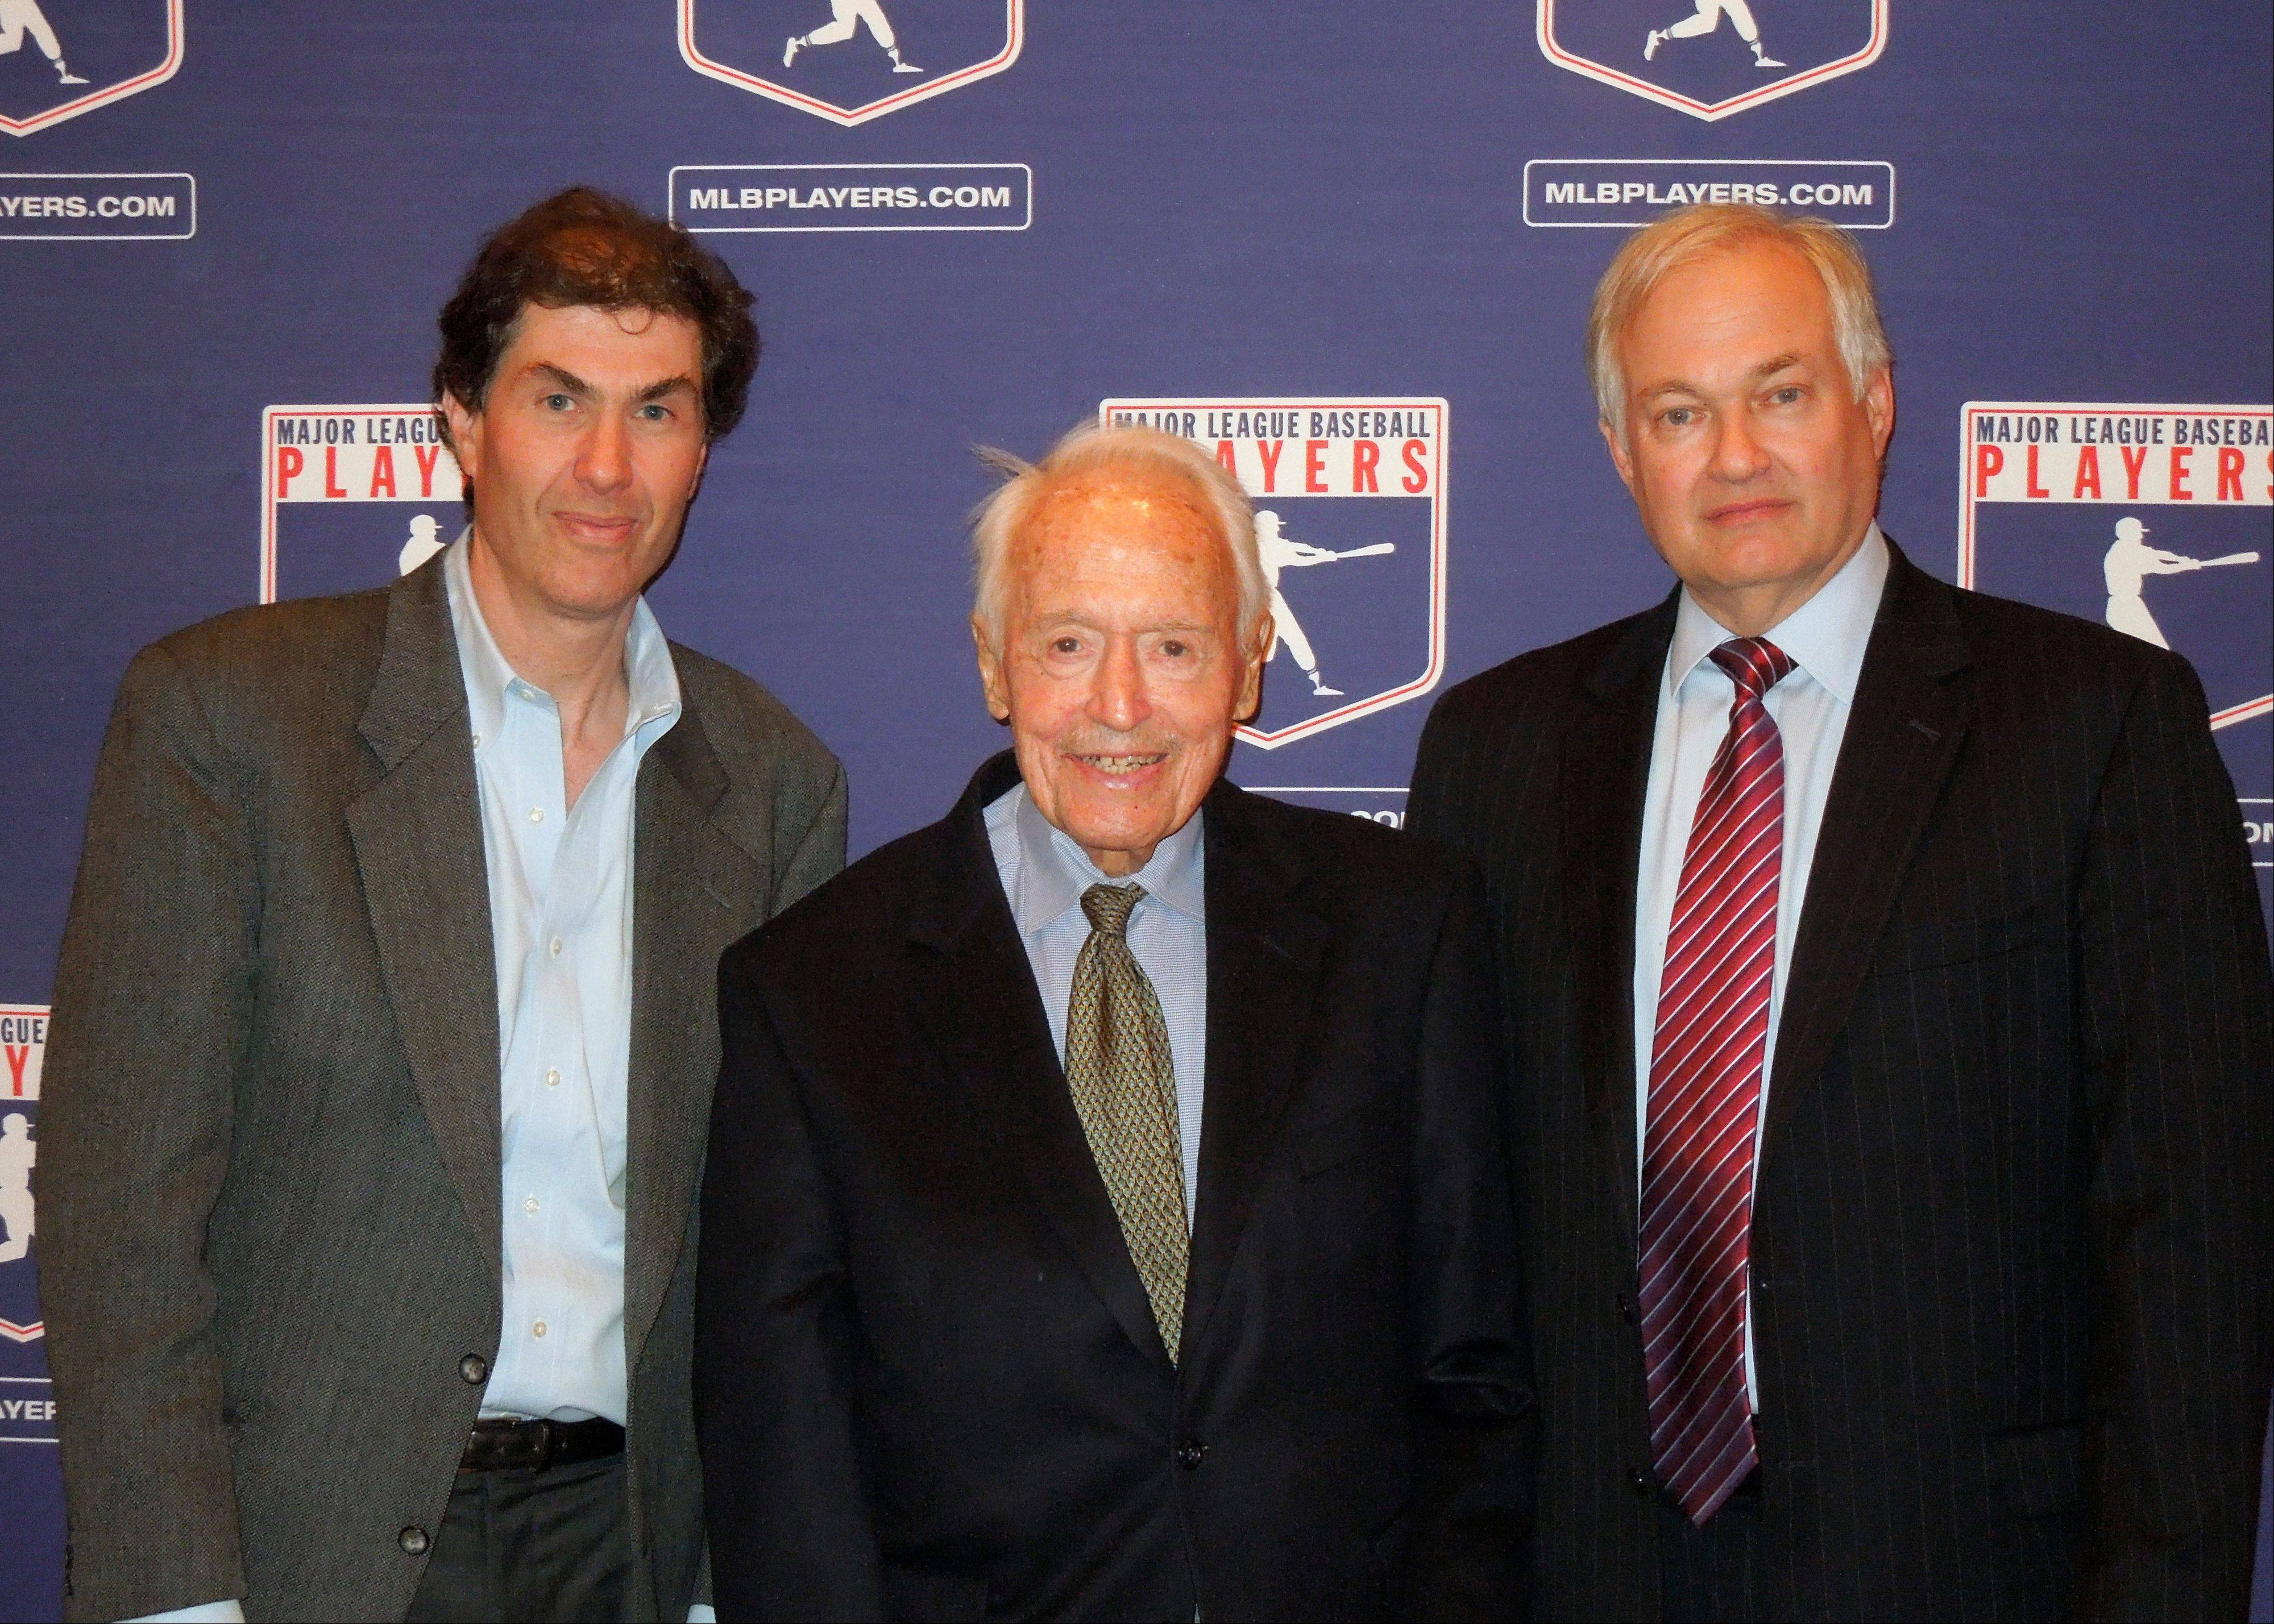 In this April 24, 2012 photo provided by the Major League Baseball Players Association, Michael Weiner, left, MLBPA executive director; Marvin Miller, center, former head of the association; and Donald Fehr, former MLBPA executive director and currently the executive director of the NHL Players' Association, gather for a photo at New York University School of Law in New York, where Miller discussed the 40th anniversary of the first baseball strike. Miller, the union leader who created free agency for baseball players and revolutionized professional sports with multimillion dollar contracts, died Tuesday. He was 95.